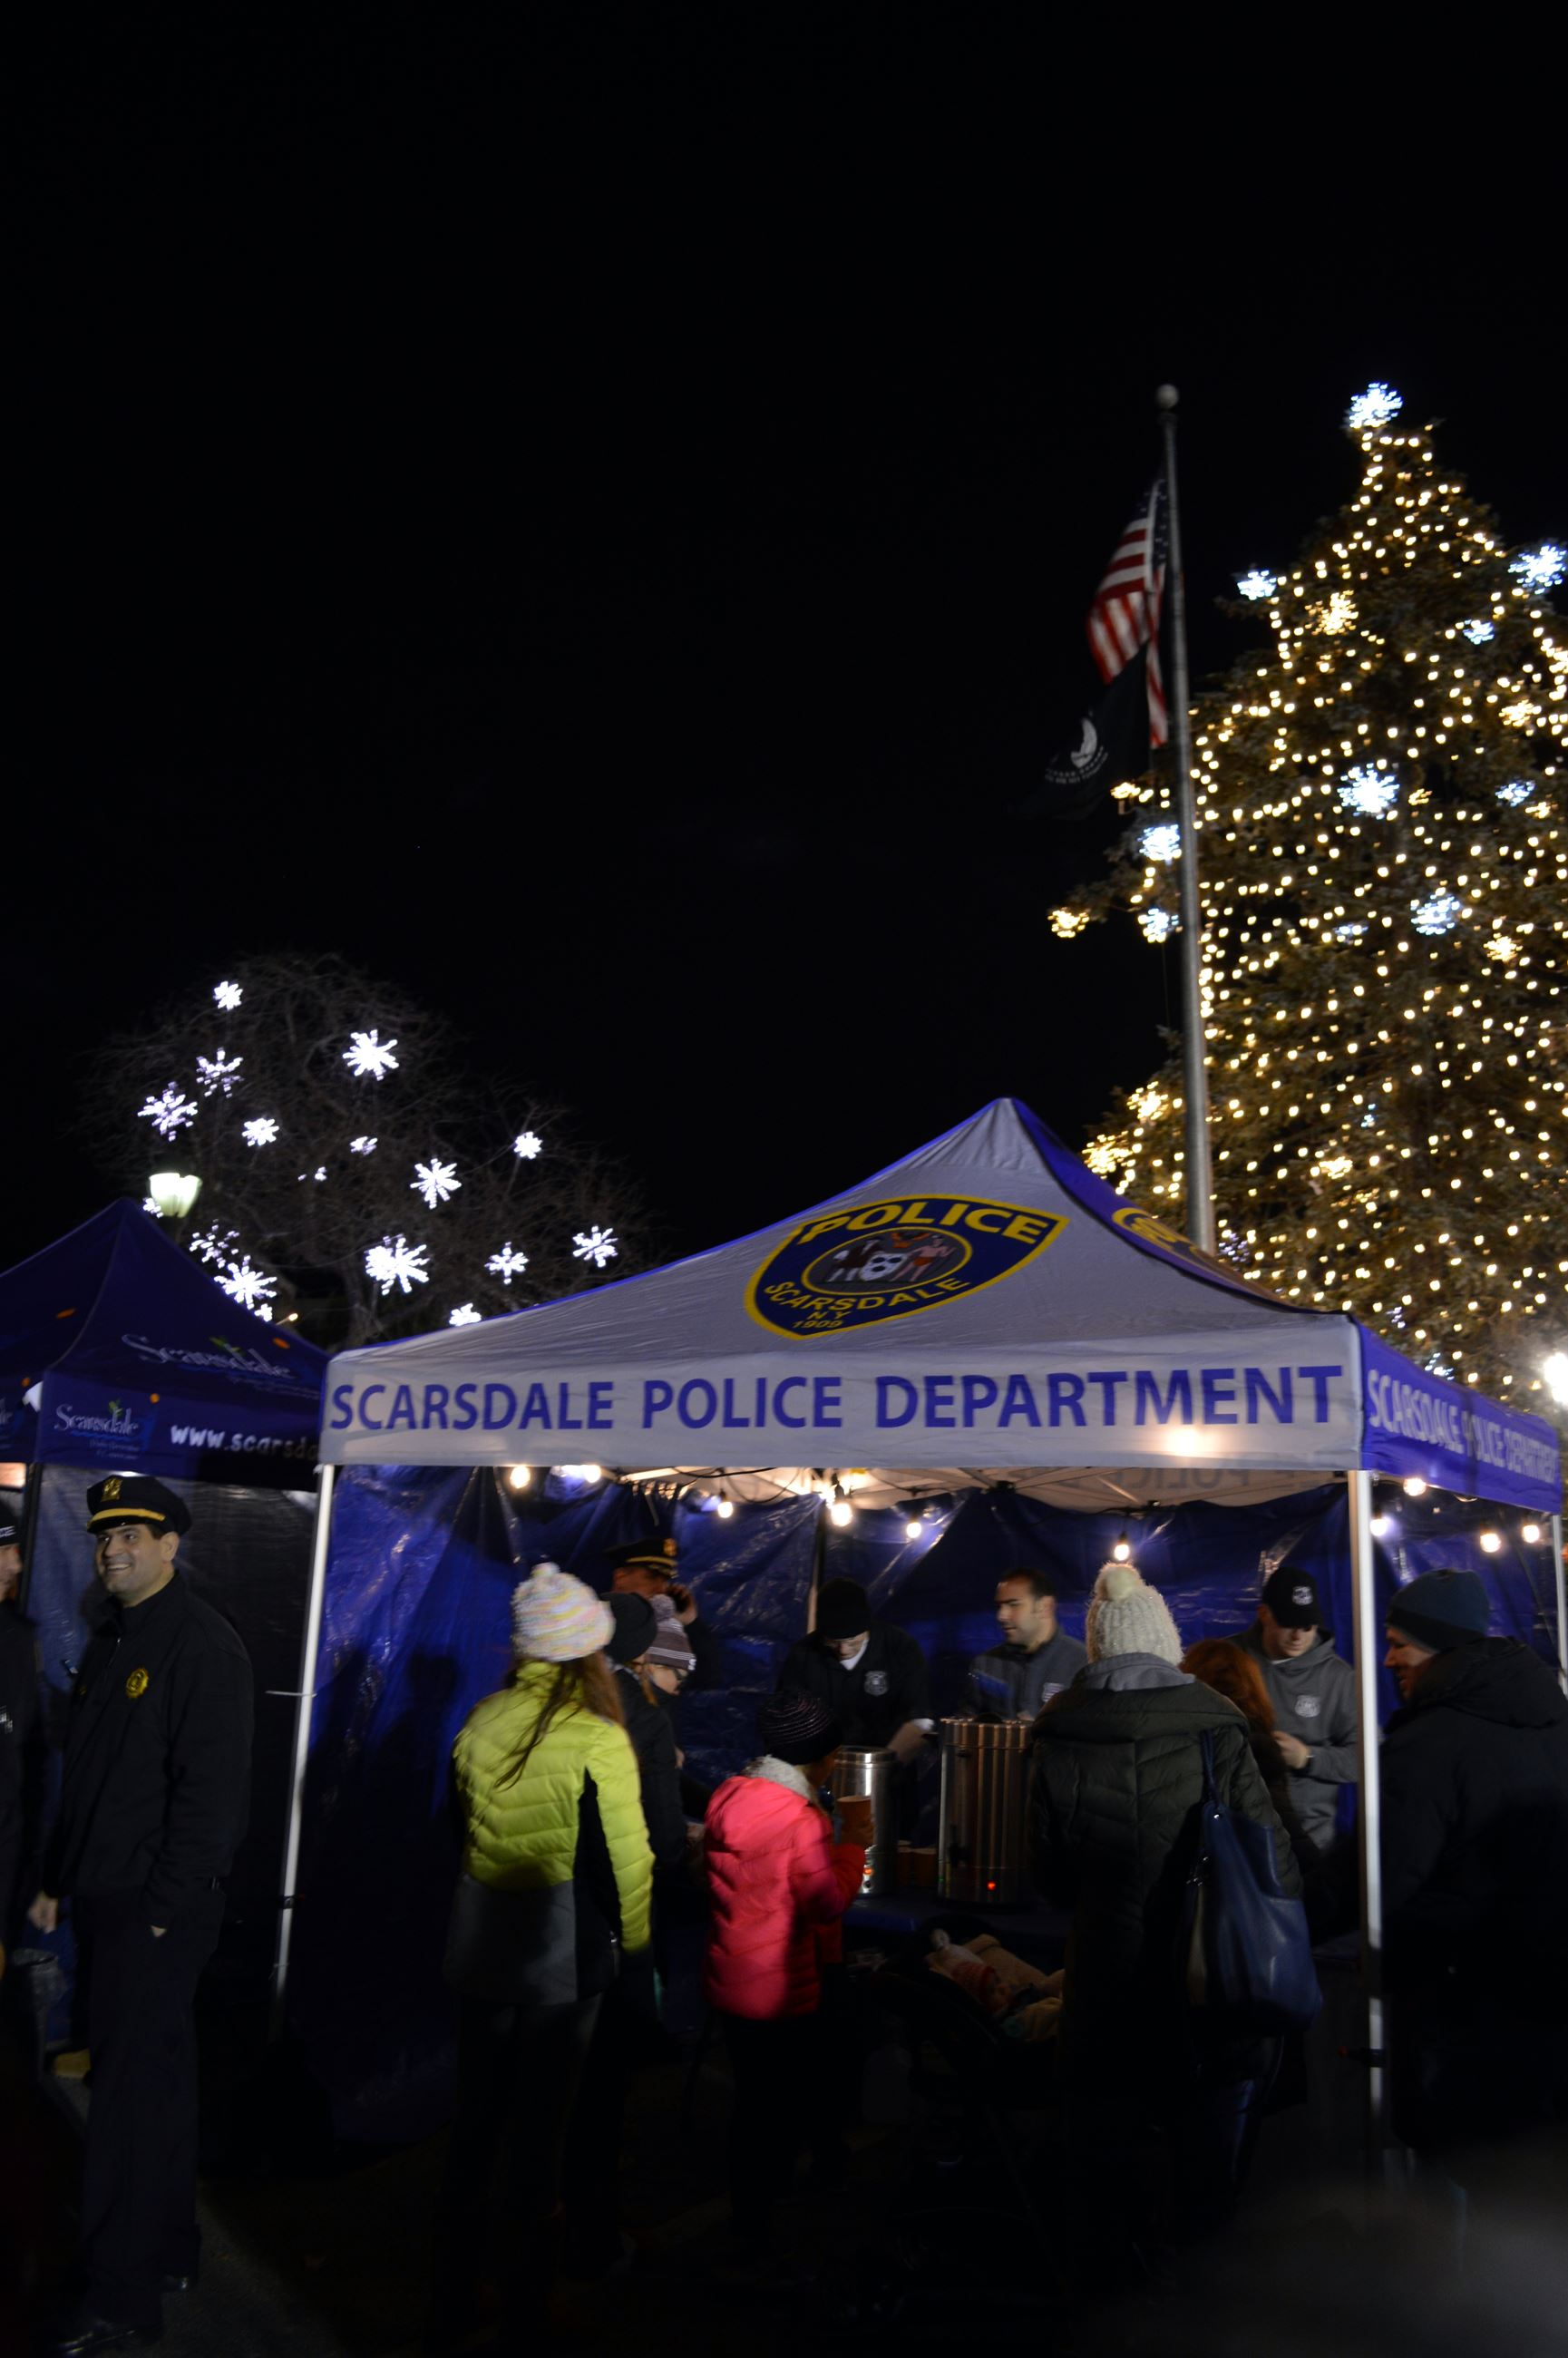 Loight the Dale - PD Tent with Holiday Lights Vert (jpg)